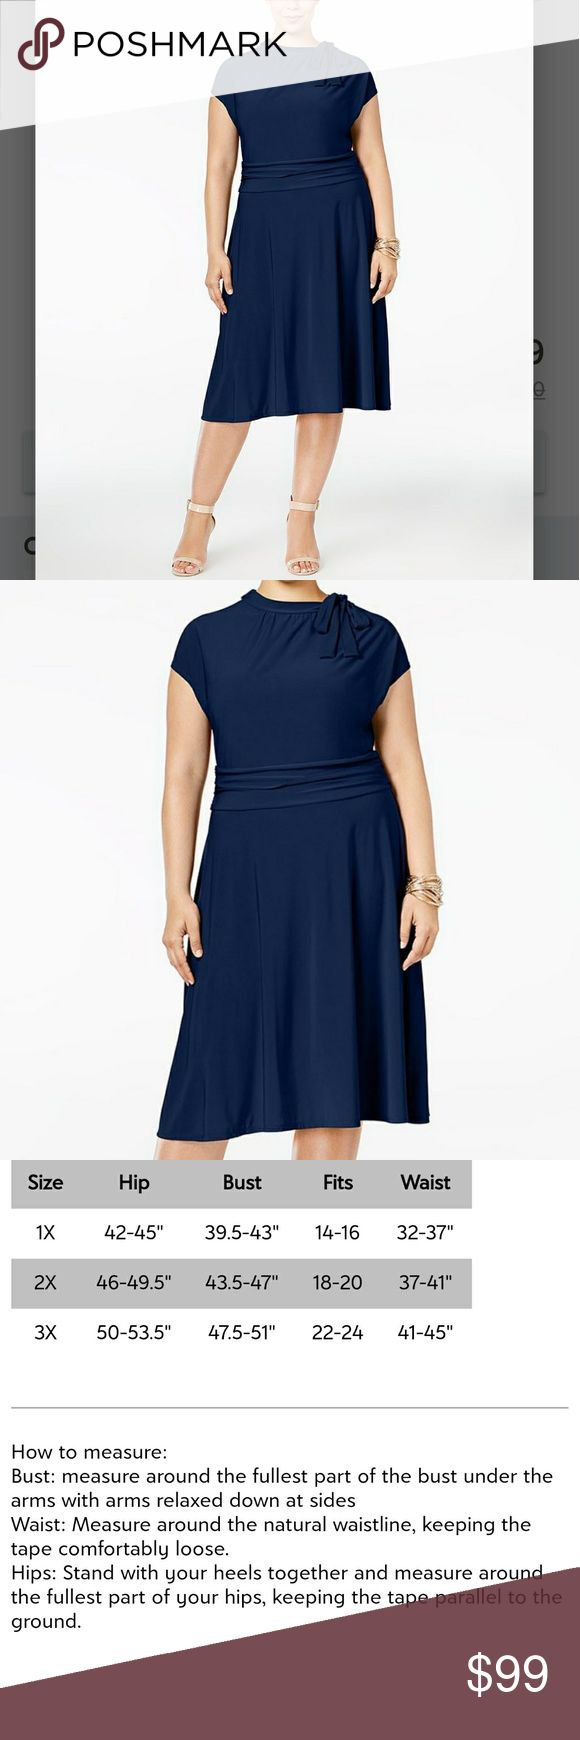 COMING SOON! ➕(1X-3X) Navy Cap Sleeve Dress Midi length, sleek and straight.  Ruching around the waist and a tie shoulder.  95% poly, 5%spandex.  Nice weight.  More pics to come... Dresses